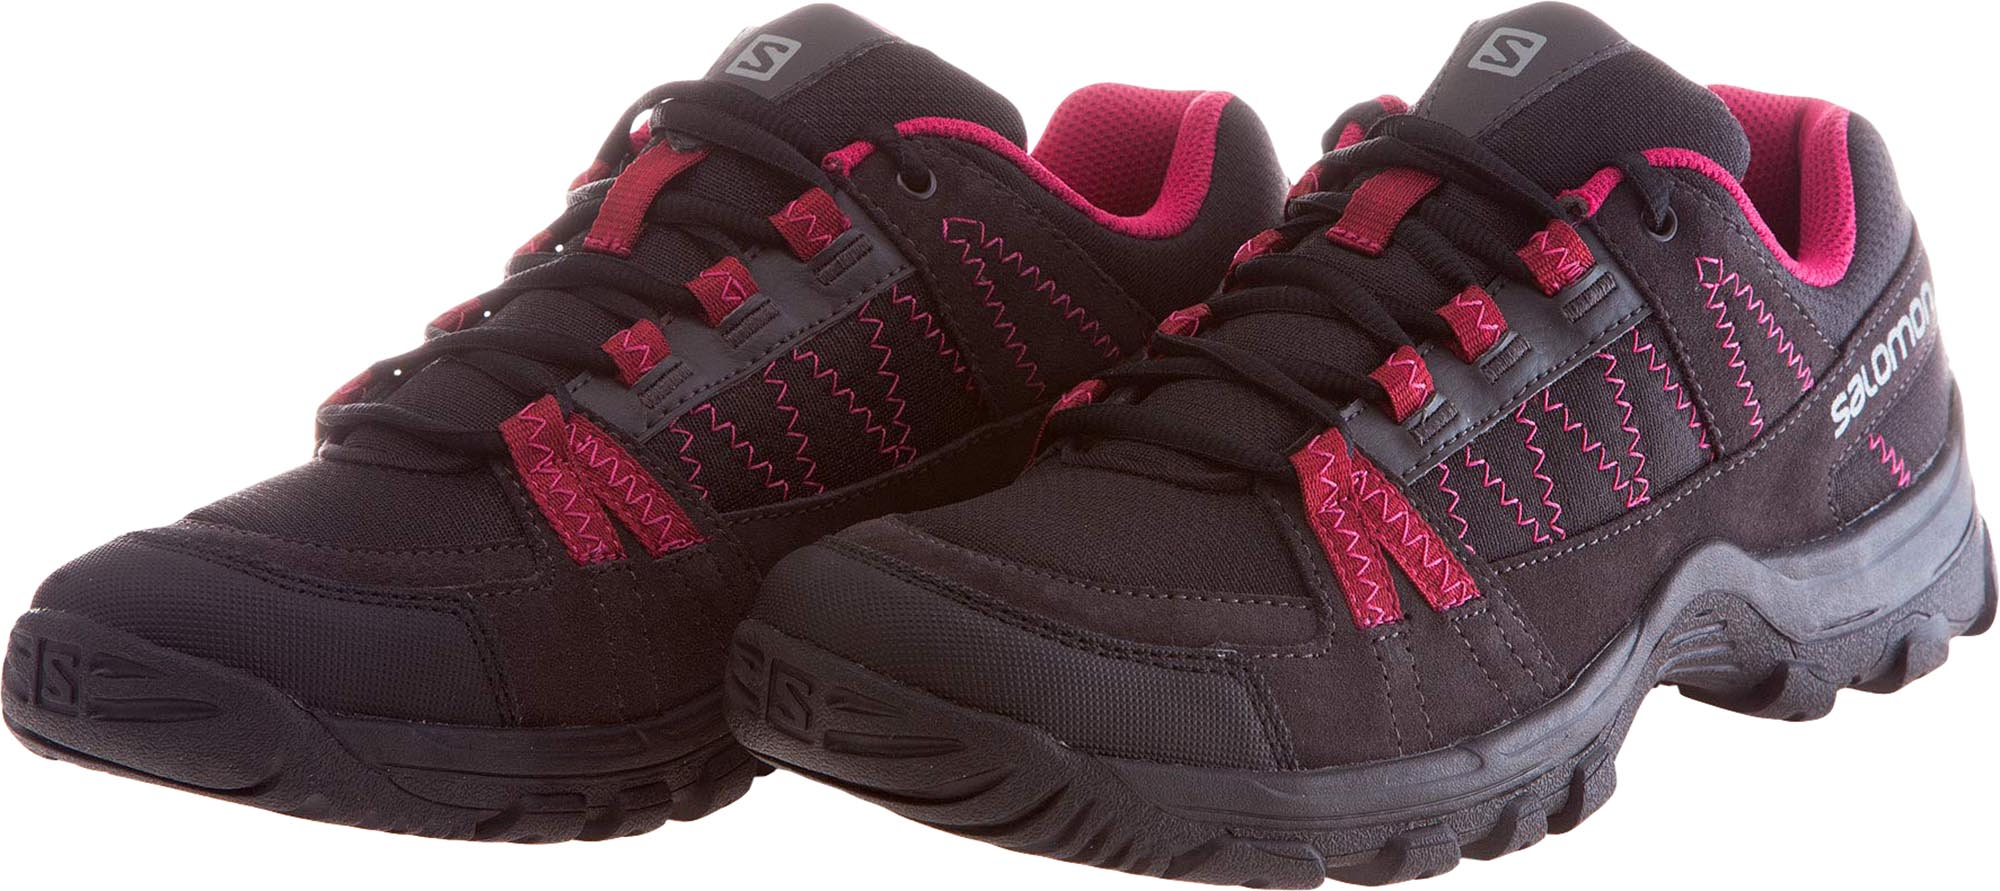 Salomon TANACROSS W | sportisimo.pl